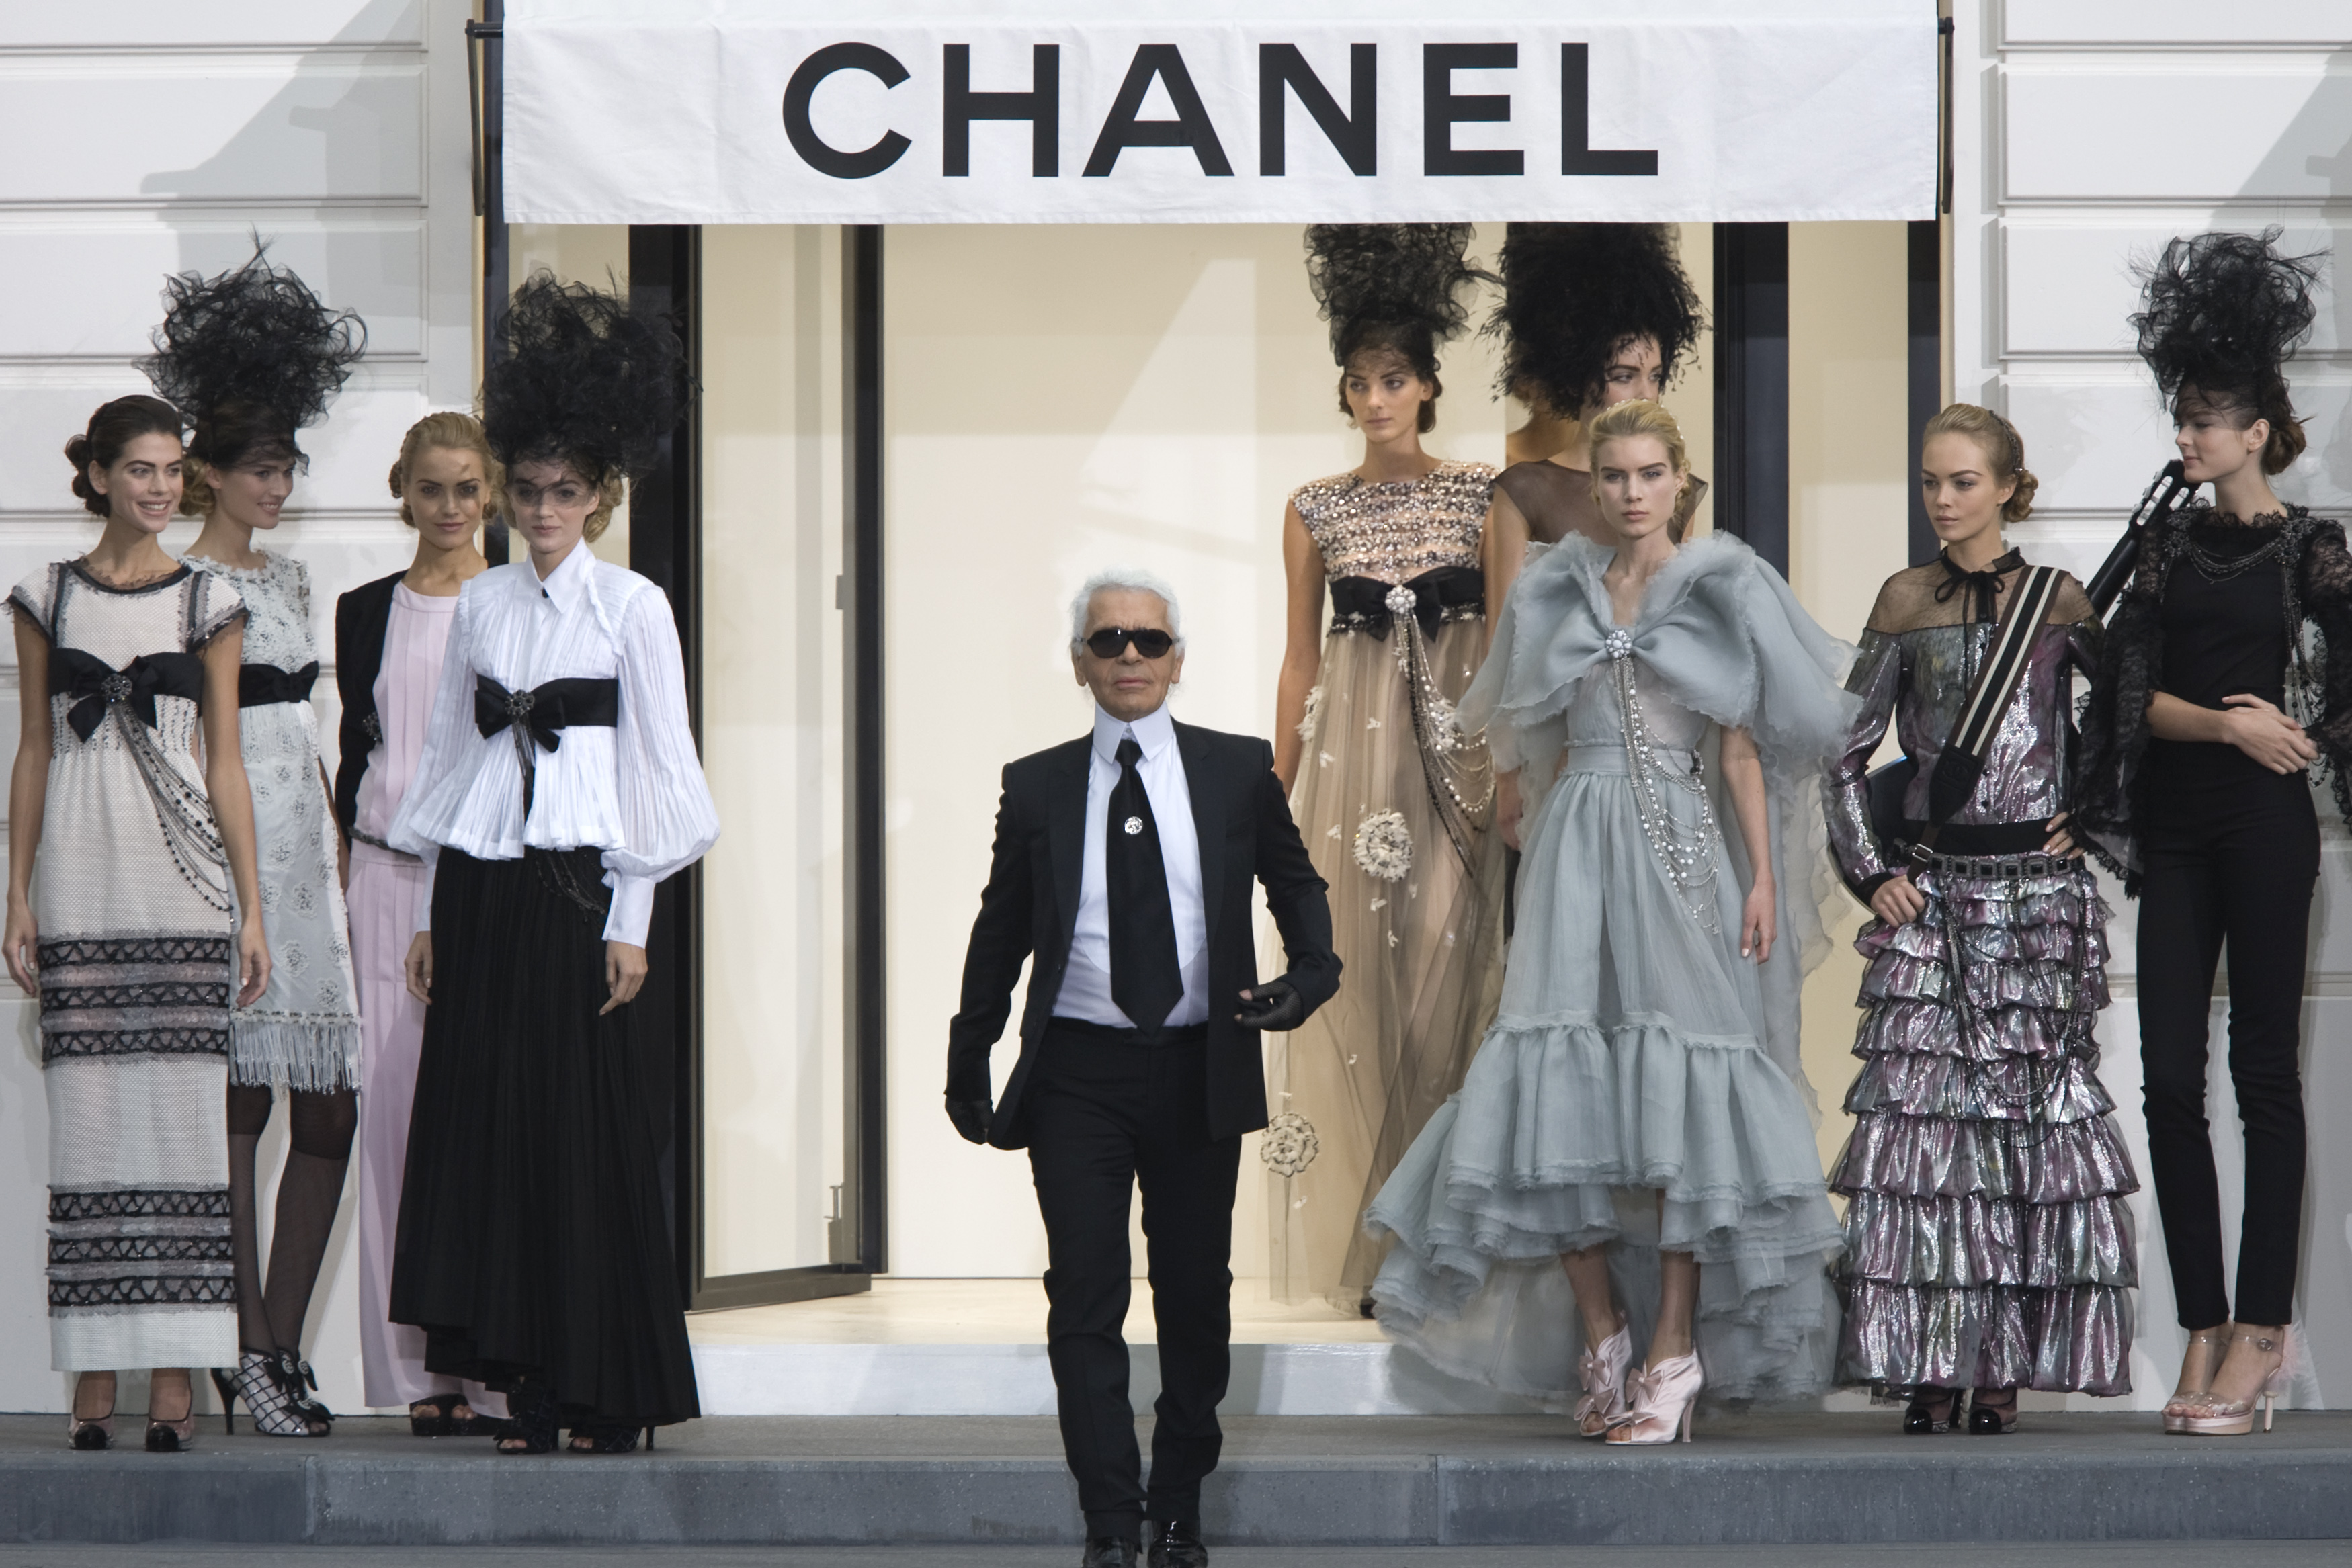 German designer Karl Lagerfeld (C) appears at the end of the spring/summer 2009 women's ready-to-wear show he presented for French fashion house Chanel in Paris October 3, 2008.